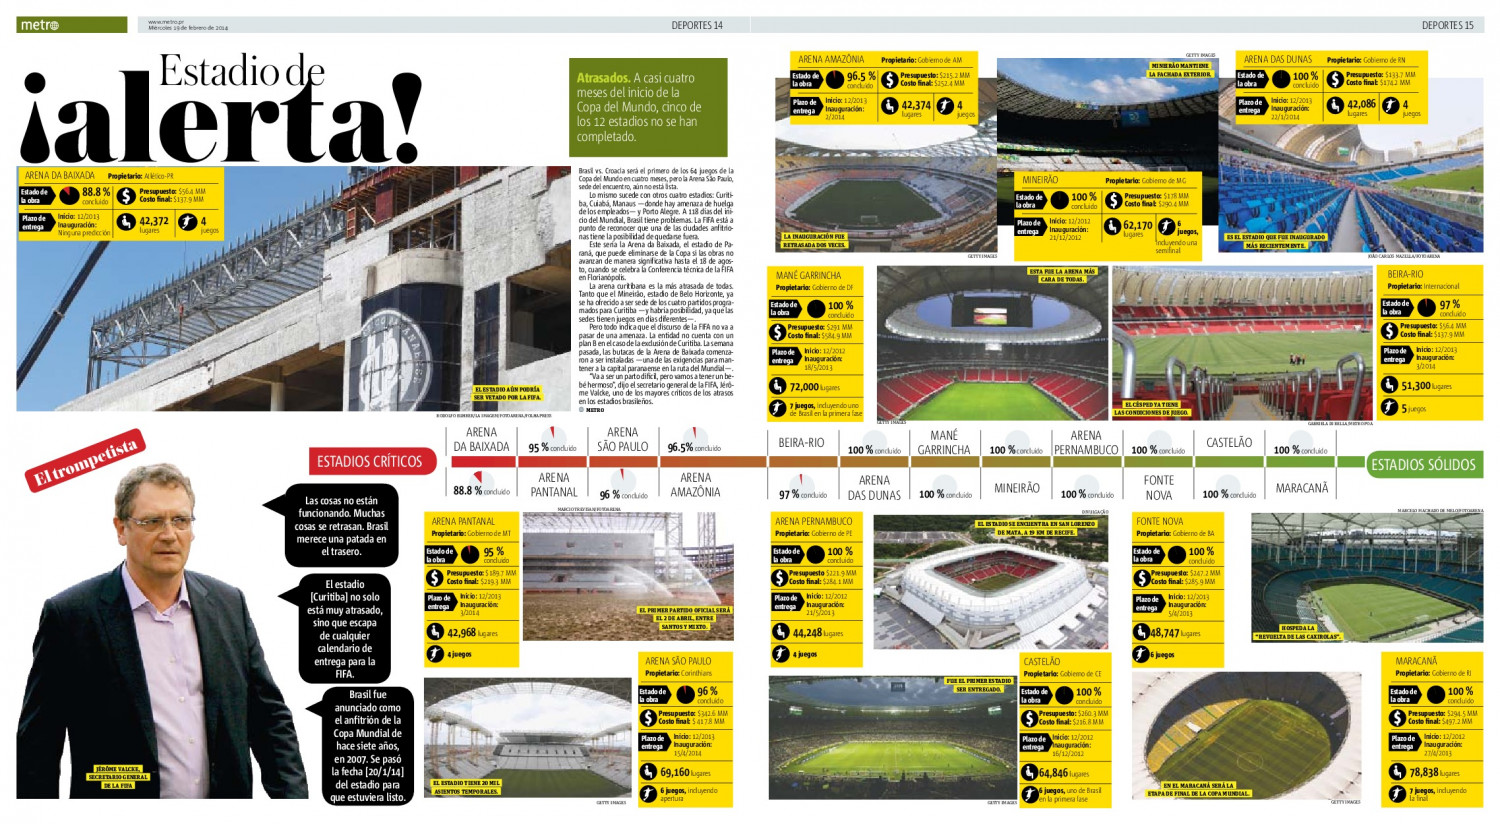 Estadio de ¡alerta! Infographic